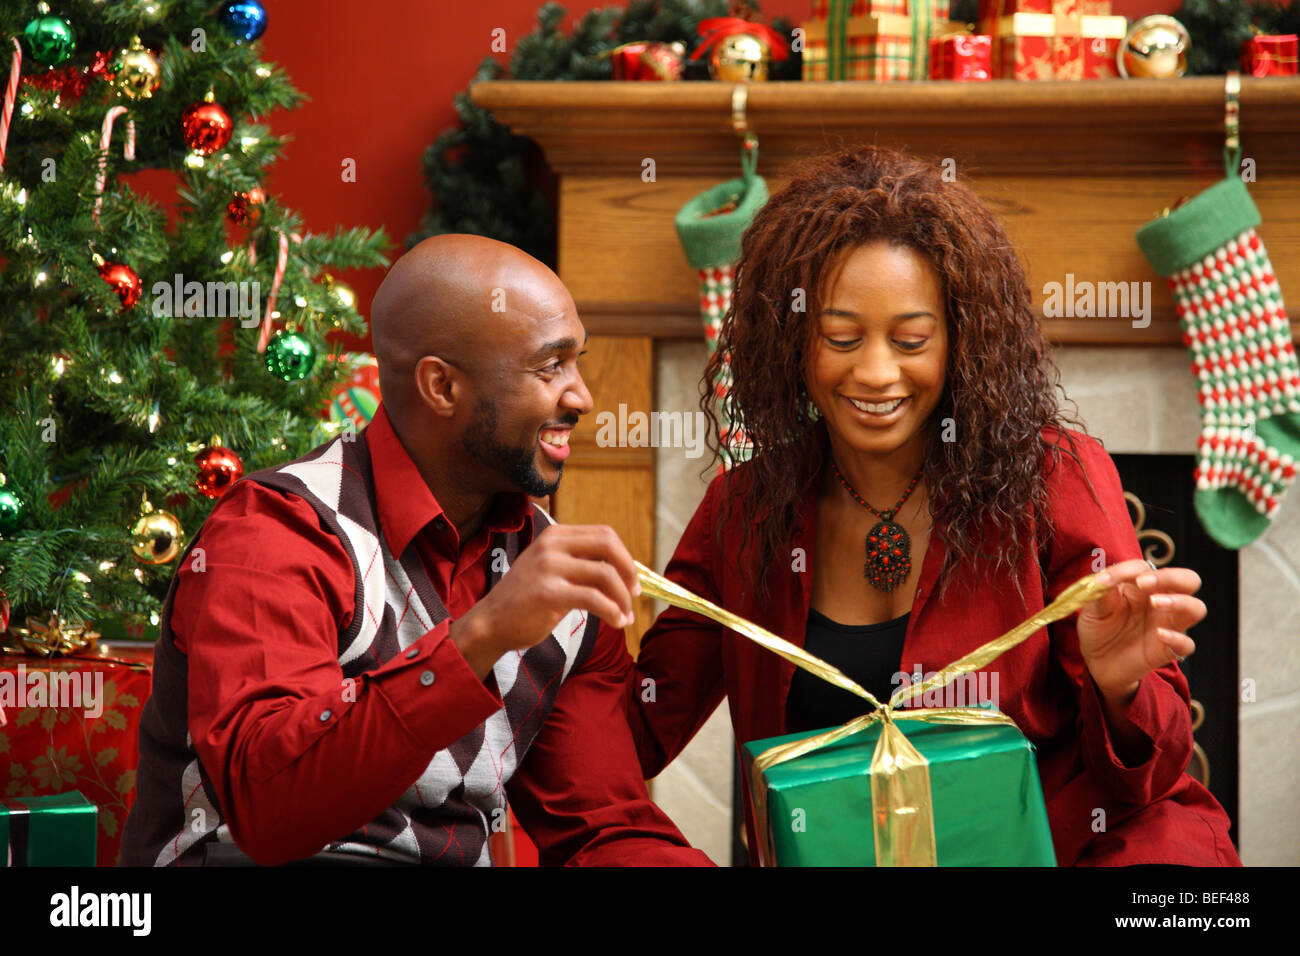 Couple opening present together by Christmas tree - Stock Image